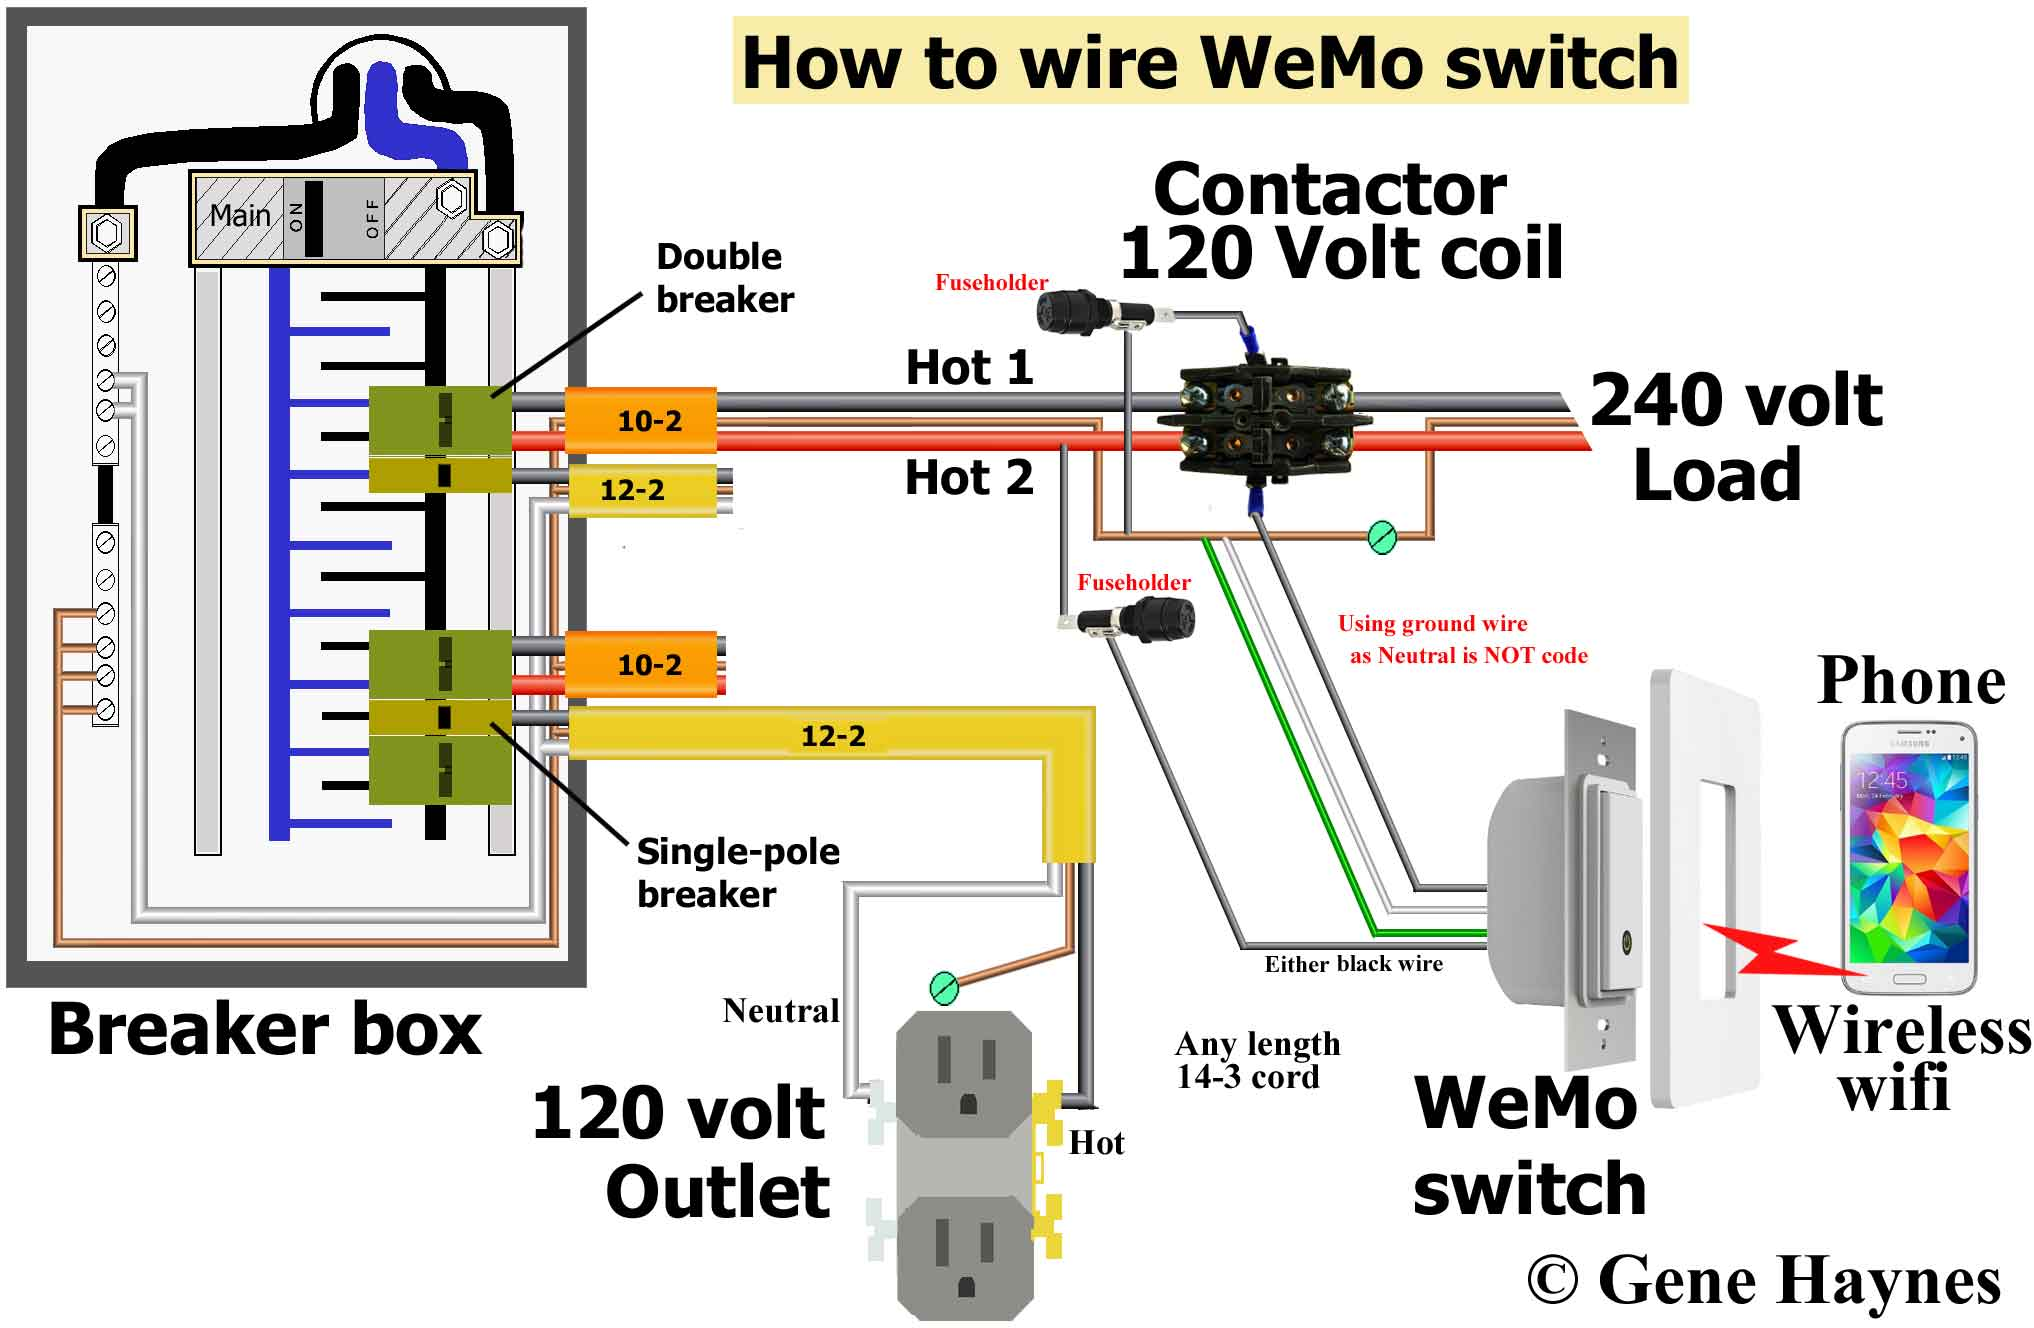 WeMo switch wiring illustration 33 not code control 240 volt with wemo 120 volt toggle switch wiring diagram at bayanpartner.co